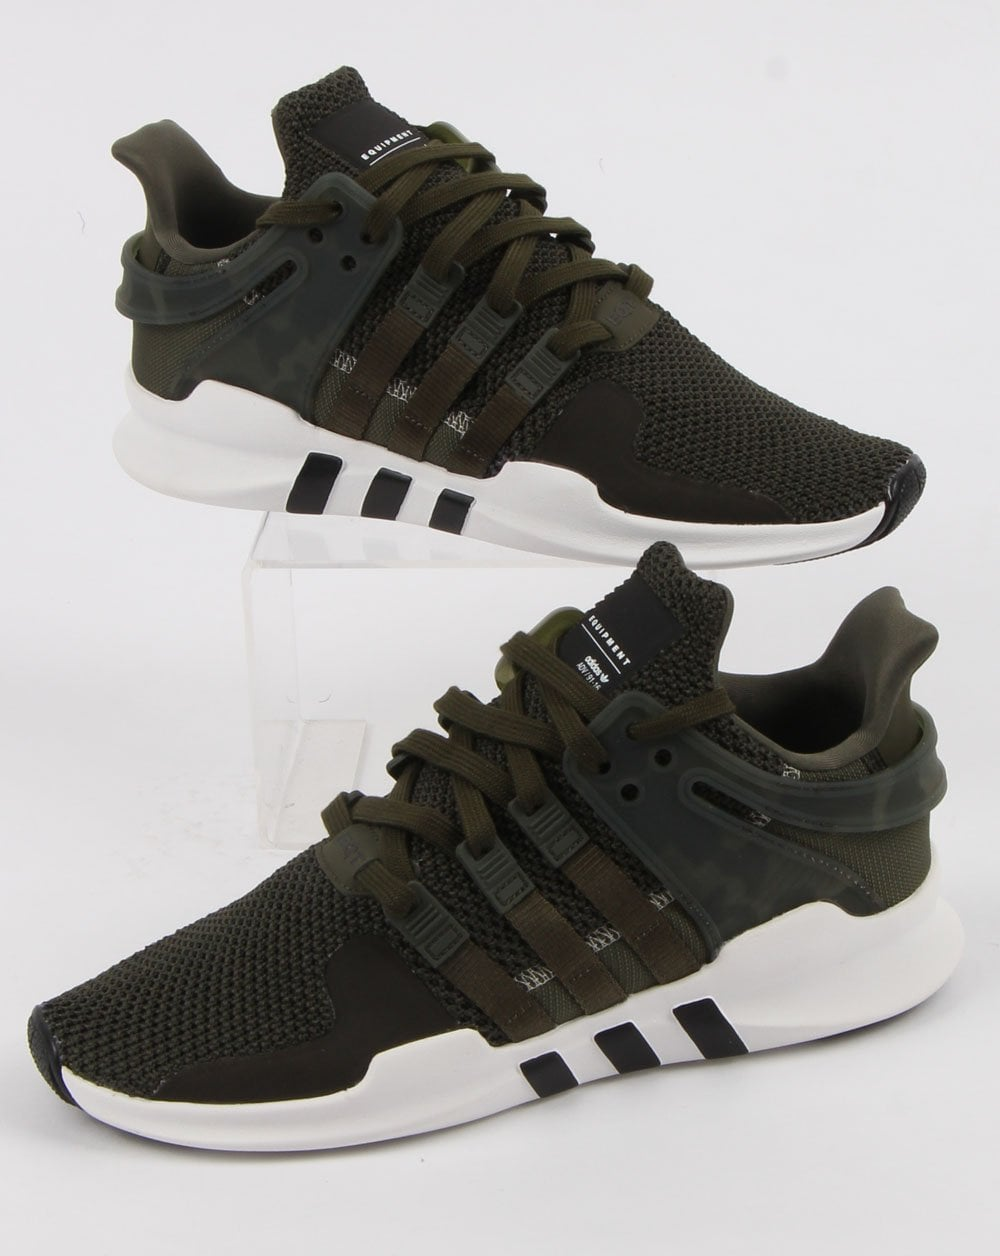 low priced 38364 40ed2 Adidas Eqt Support Adv Night Cargo/white/black